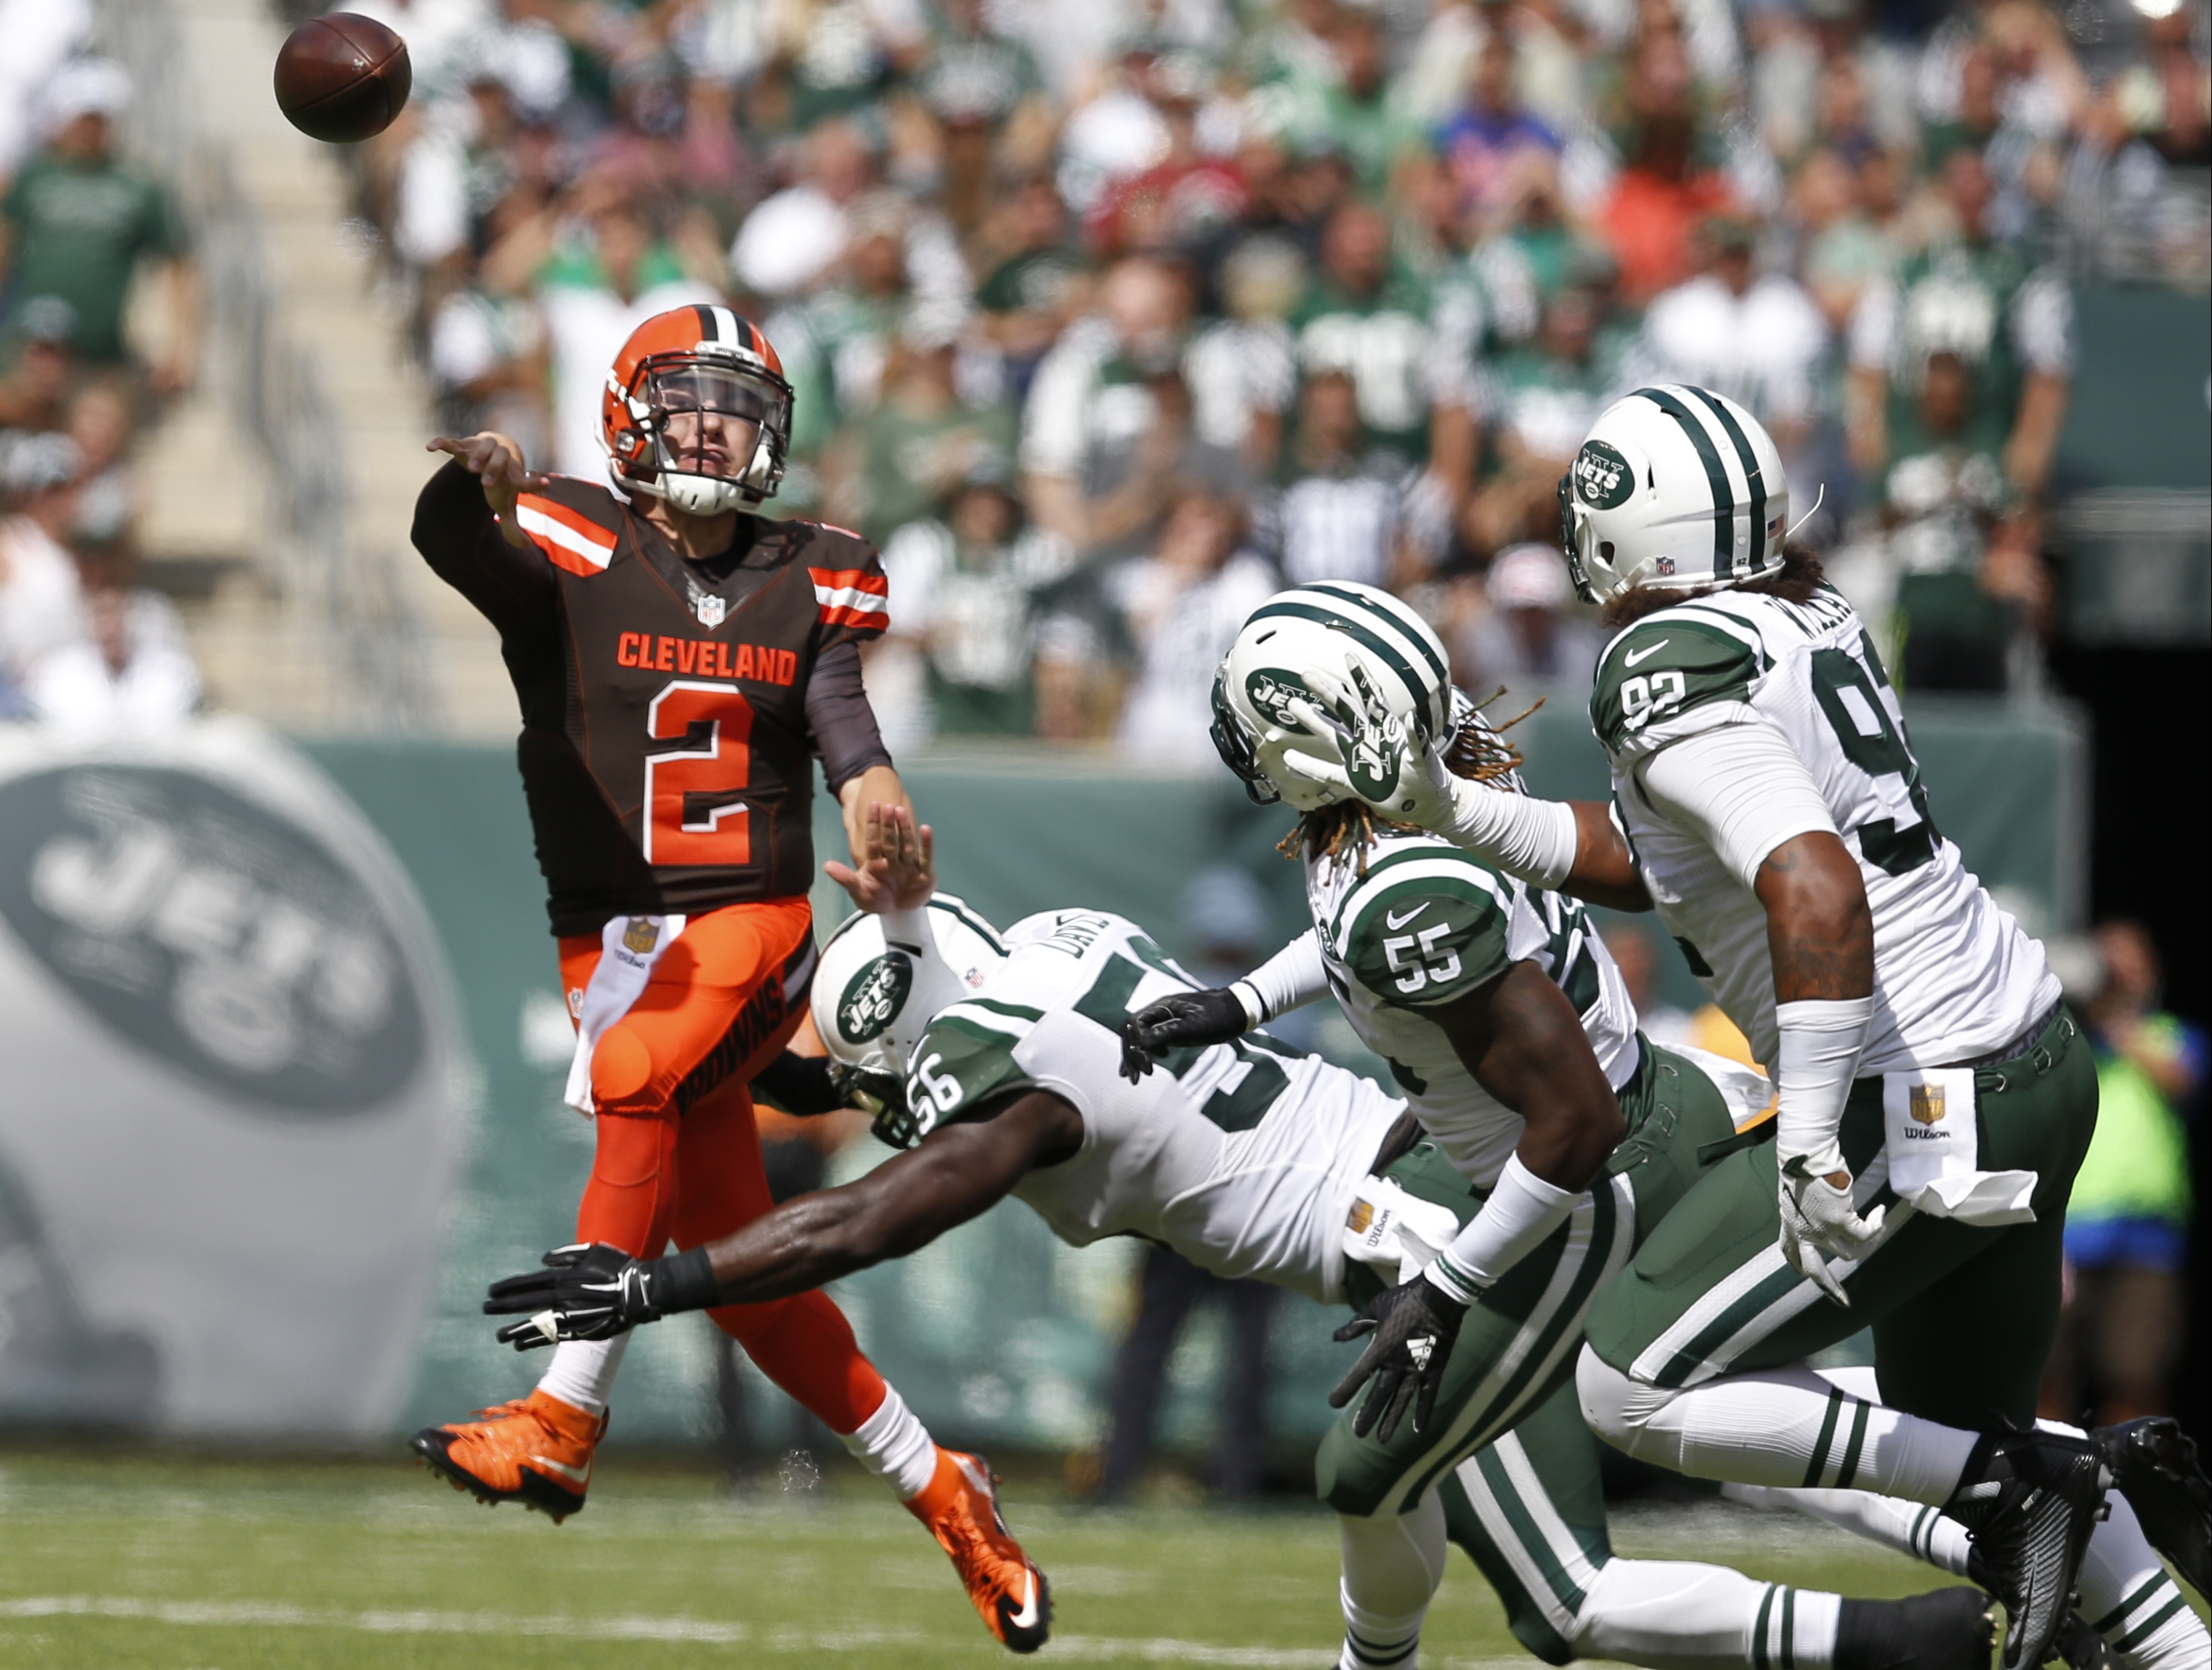 Cleveland Browns quarterback Johnny Manziel (2) throws a pass while evading New York Jets inside linebacker Demario Davis (56), Lorenzo Mauldin (55) and Kevin Vickerson (92) during the first half of an NFL football game Sunday, Sept. 13, 2015 in East Ruth